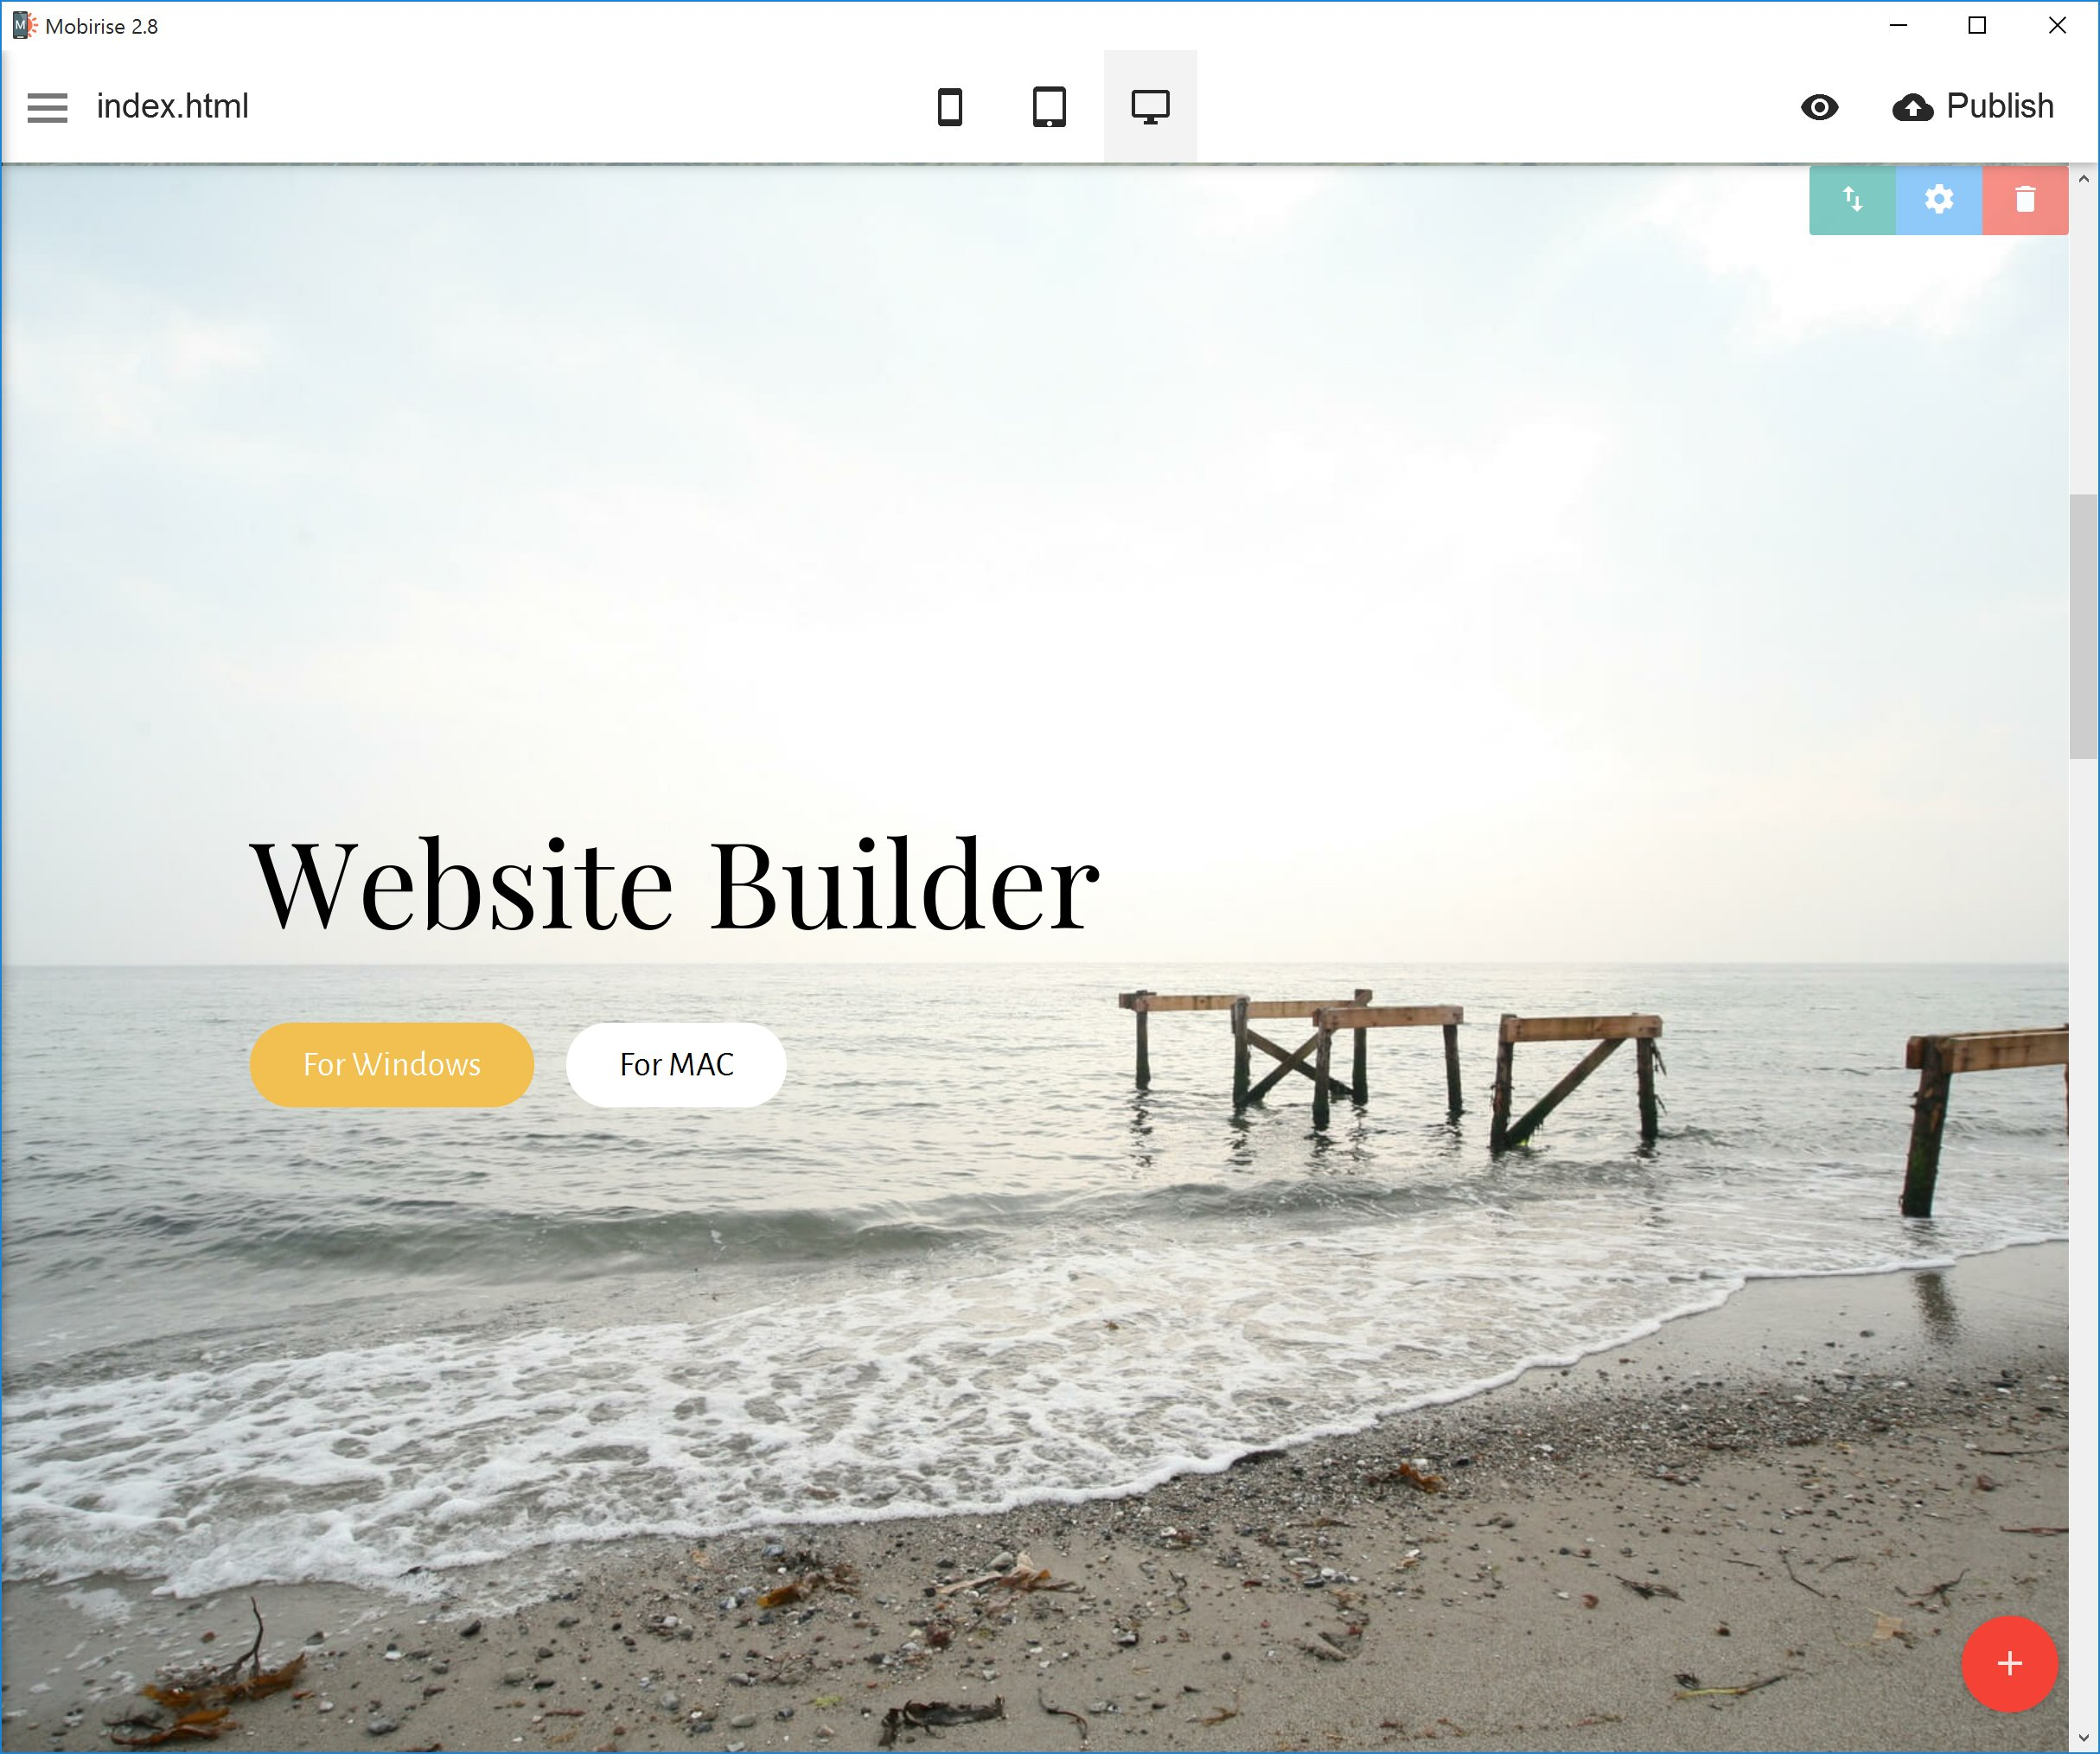 How to Make a Mobile Site in HTML